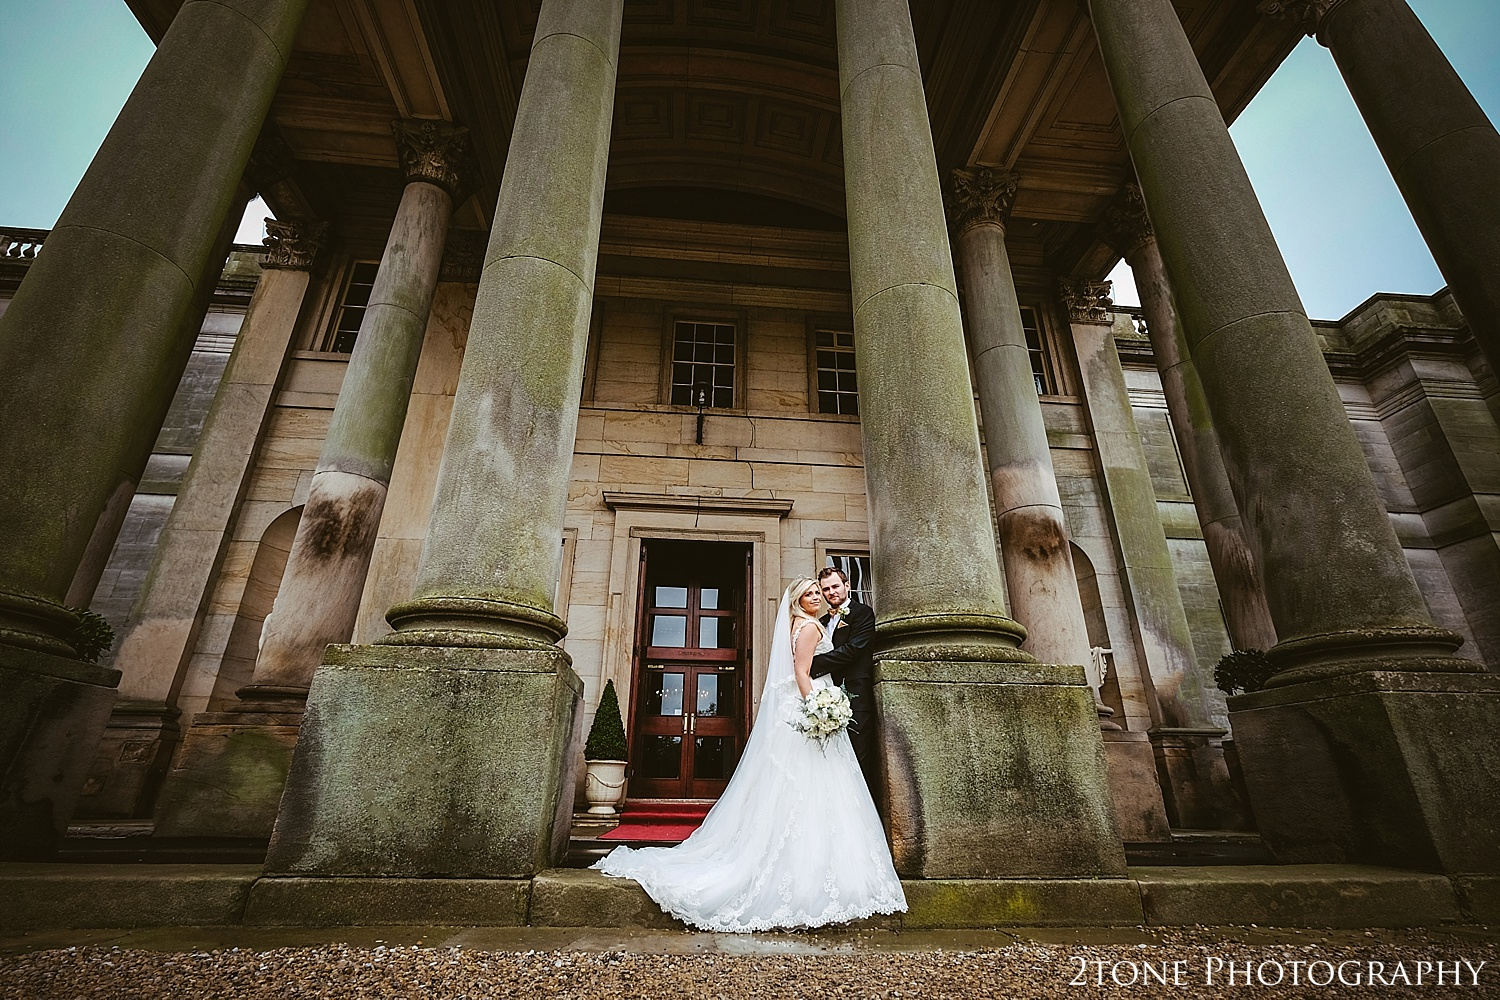 Creative Wedding Photographs at Wynyard Hall.  Wynyard Hall wedding photography by www.2tonephotography.co.uk